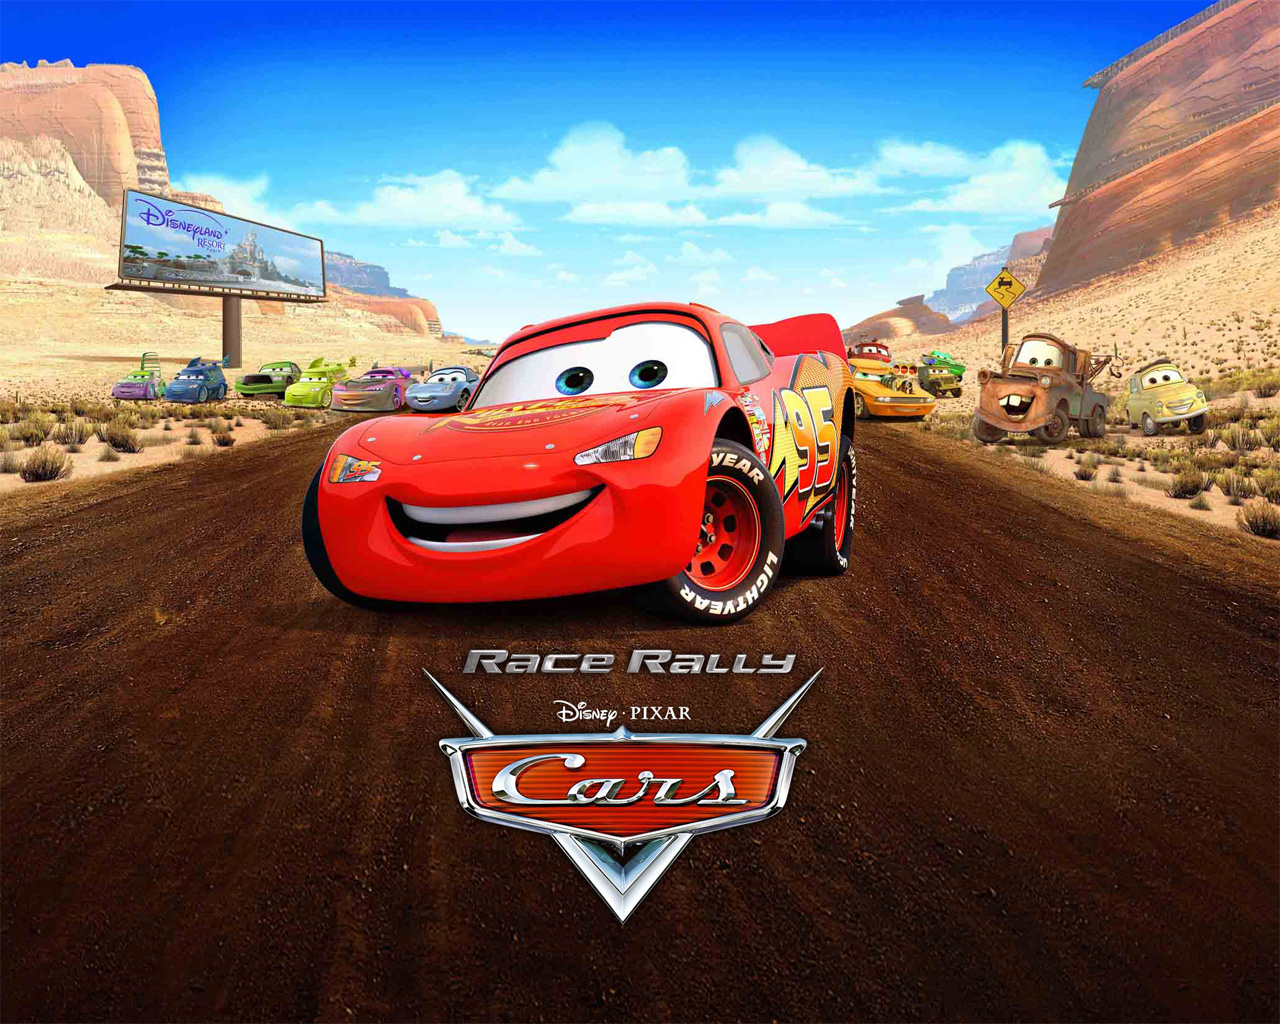 Download the following Disney Cars 14226 image by clicking the orange